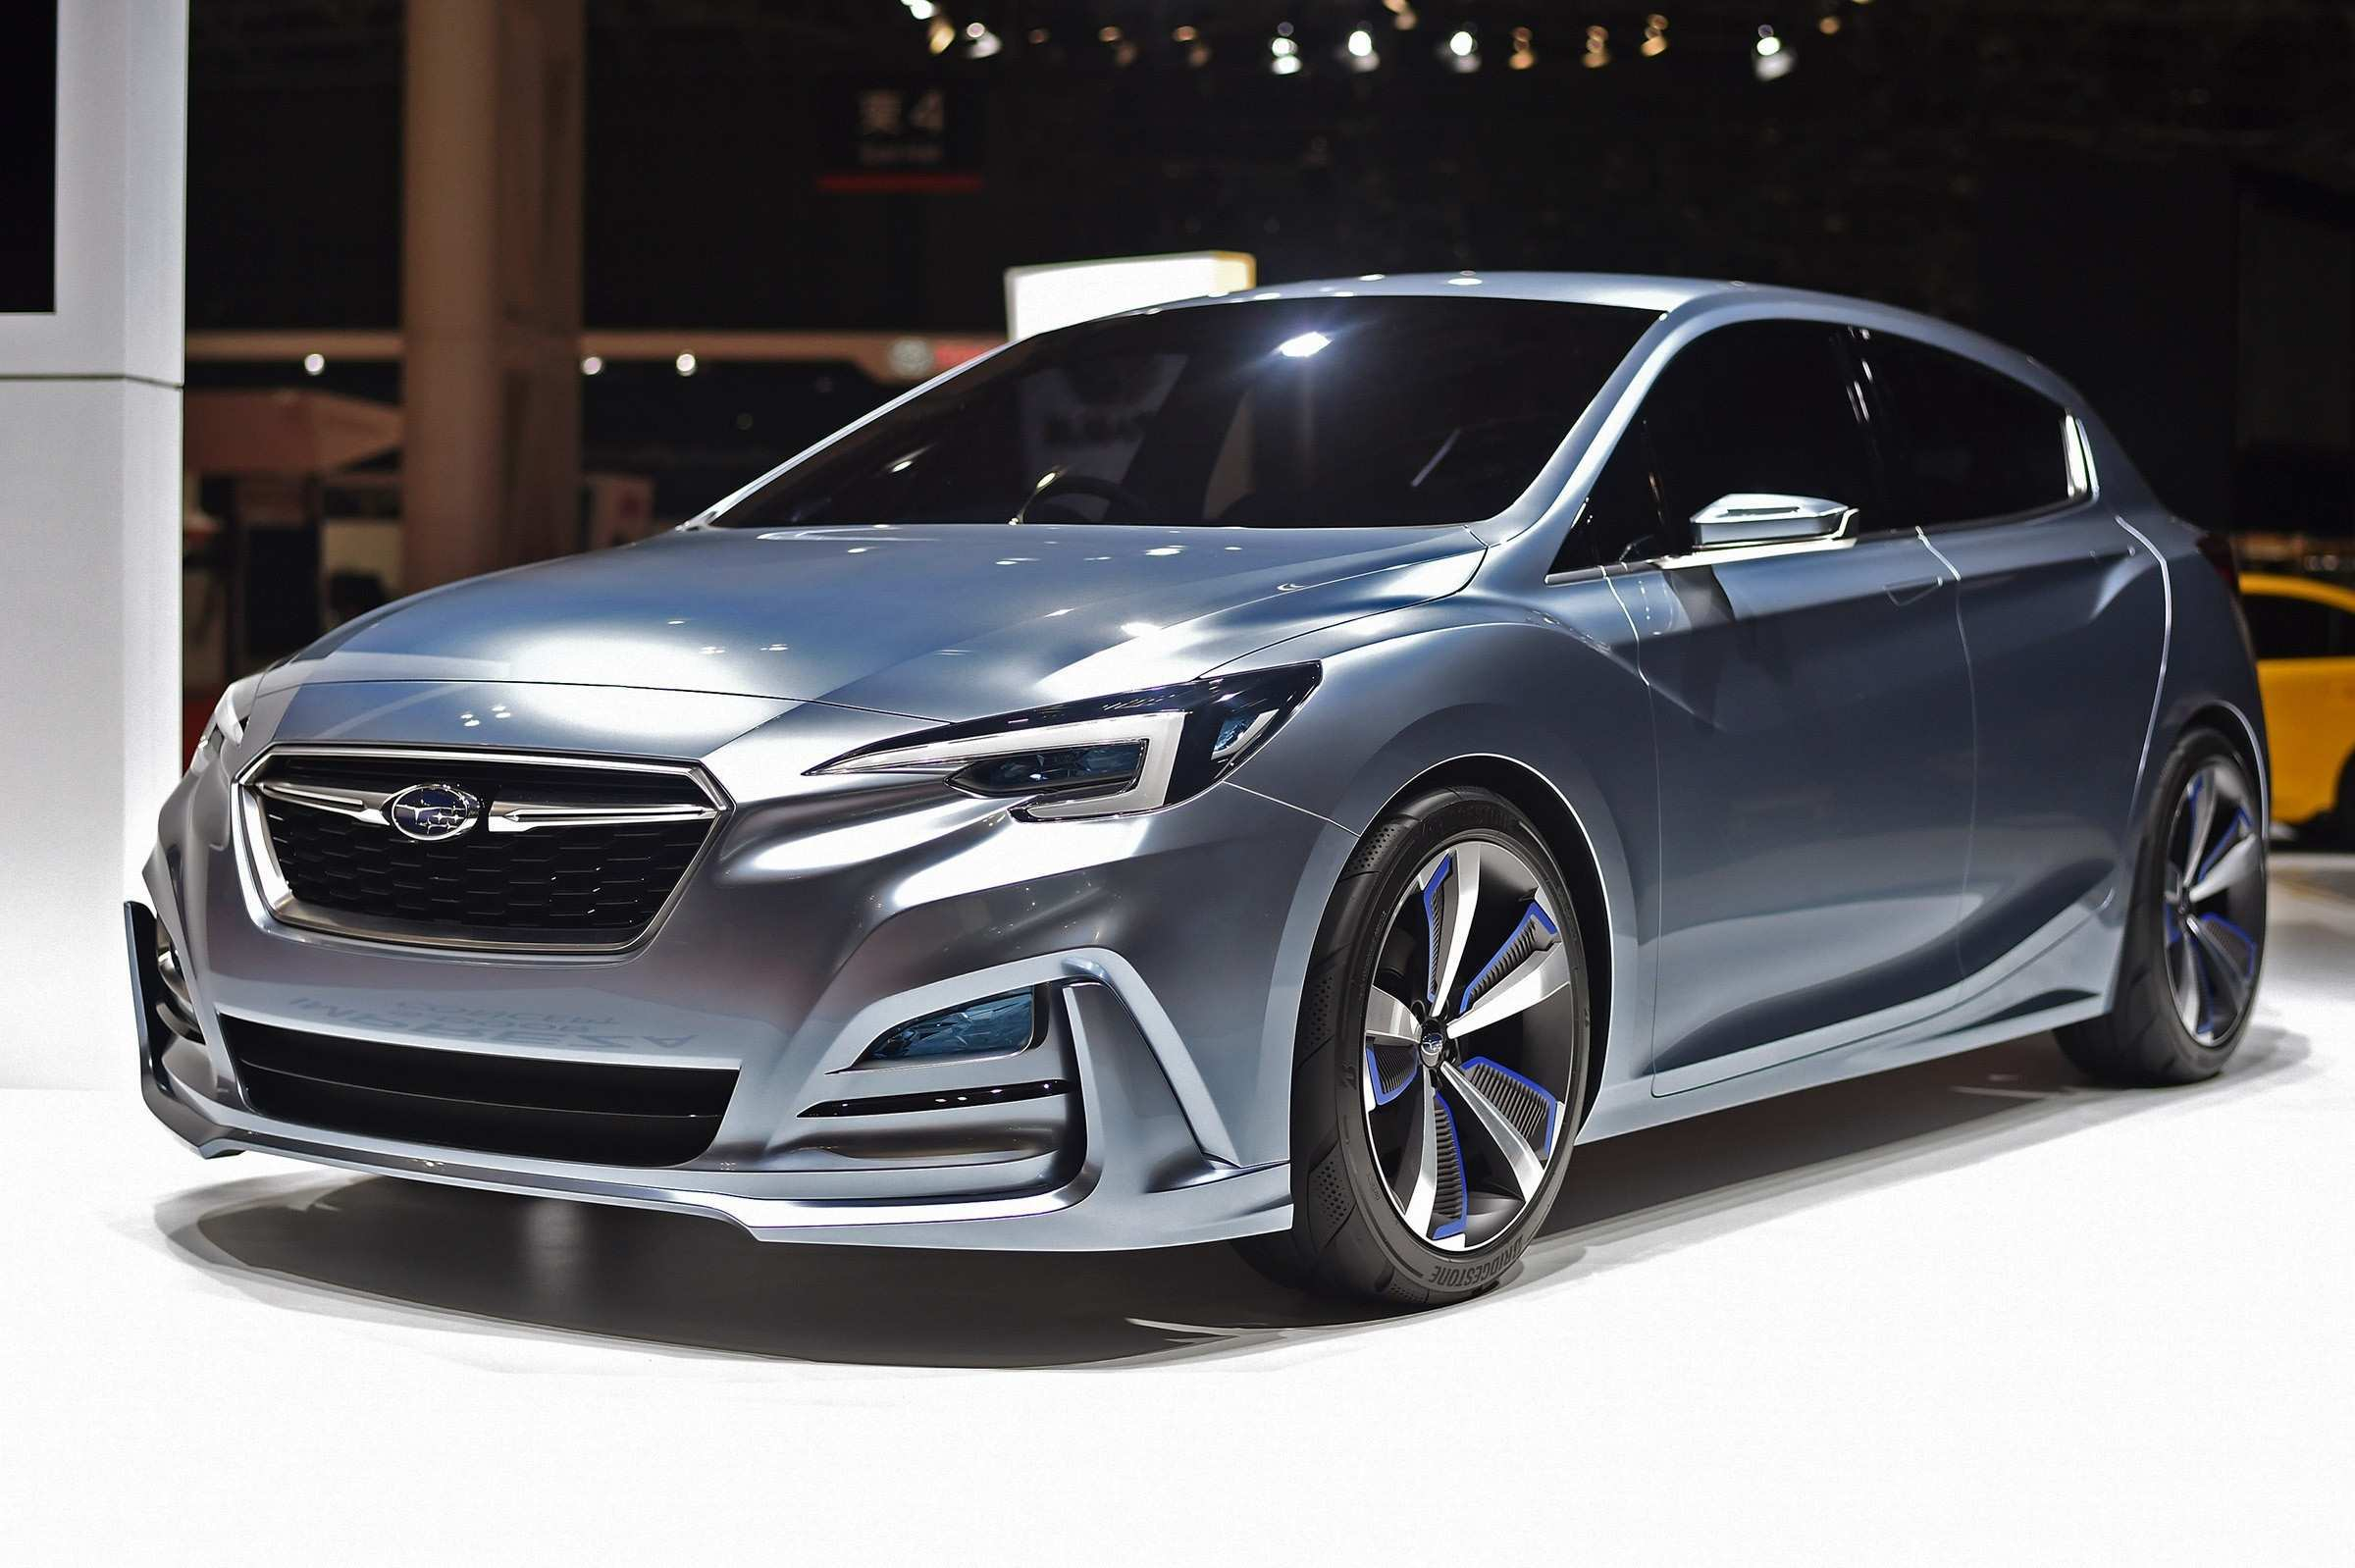 35 The Best Opel Astra Opc 2020 Concept